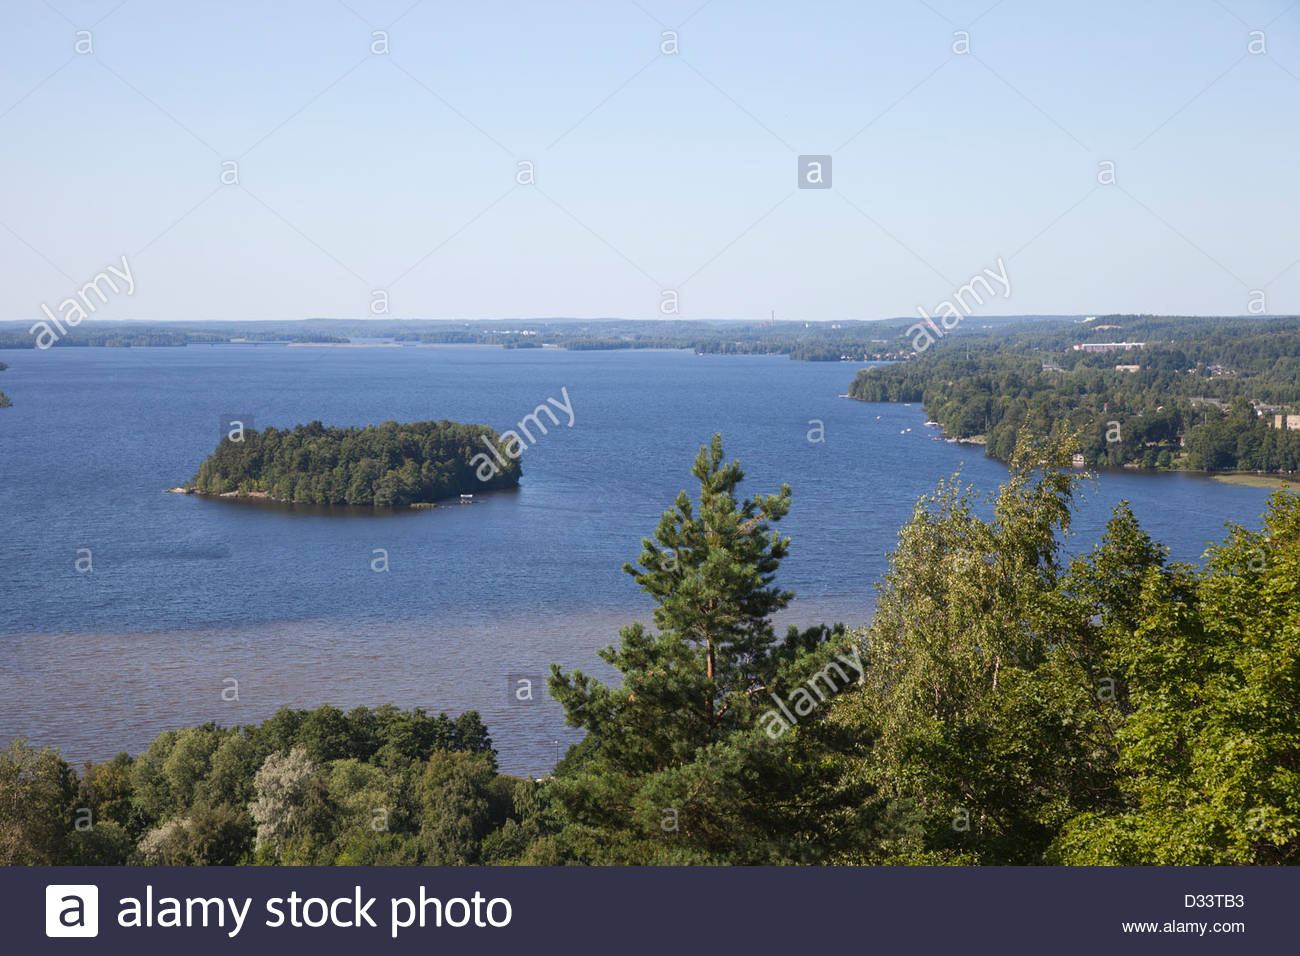 view of the lake pyhajarvi,tampere,finland,europe - Stock Image